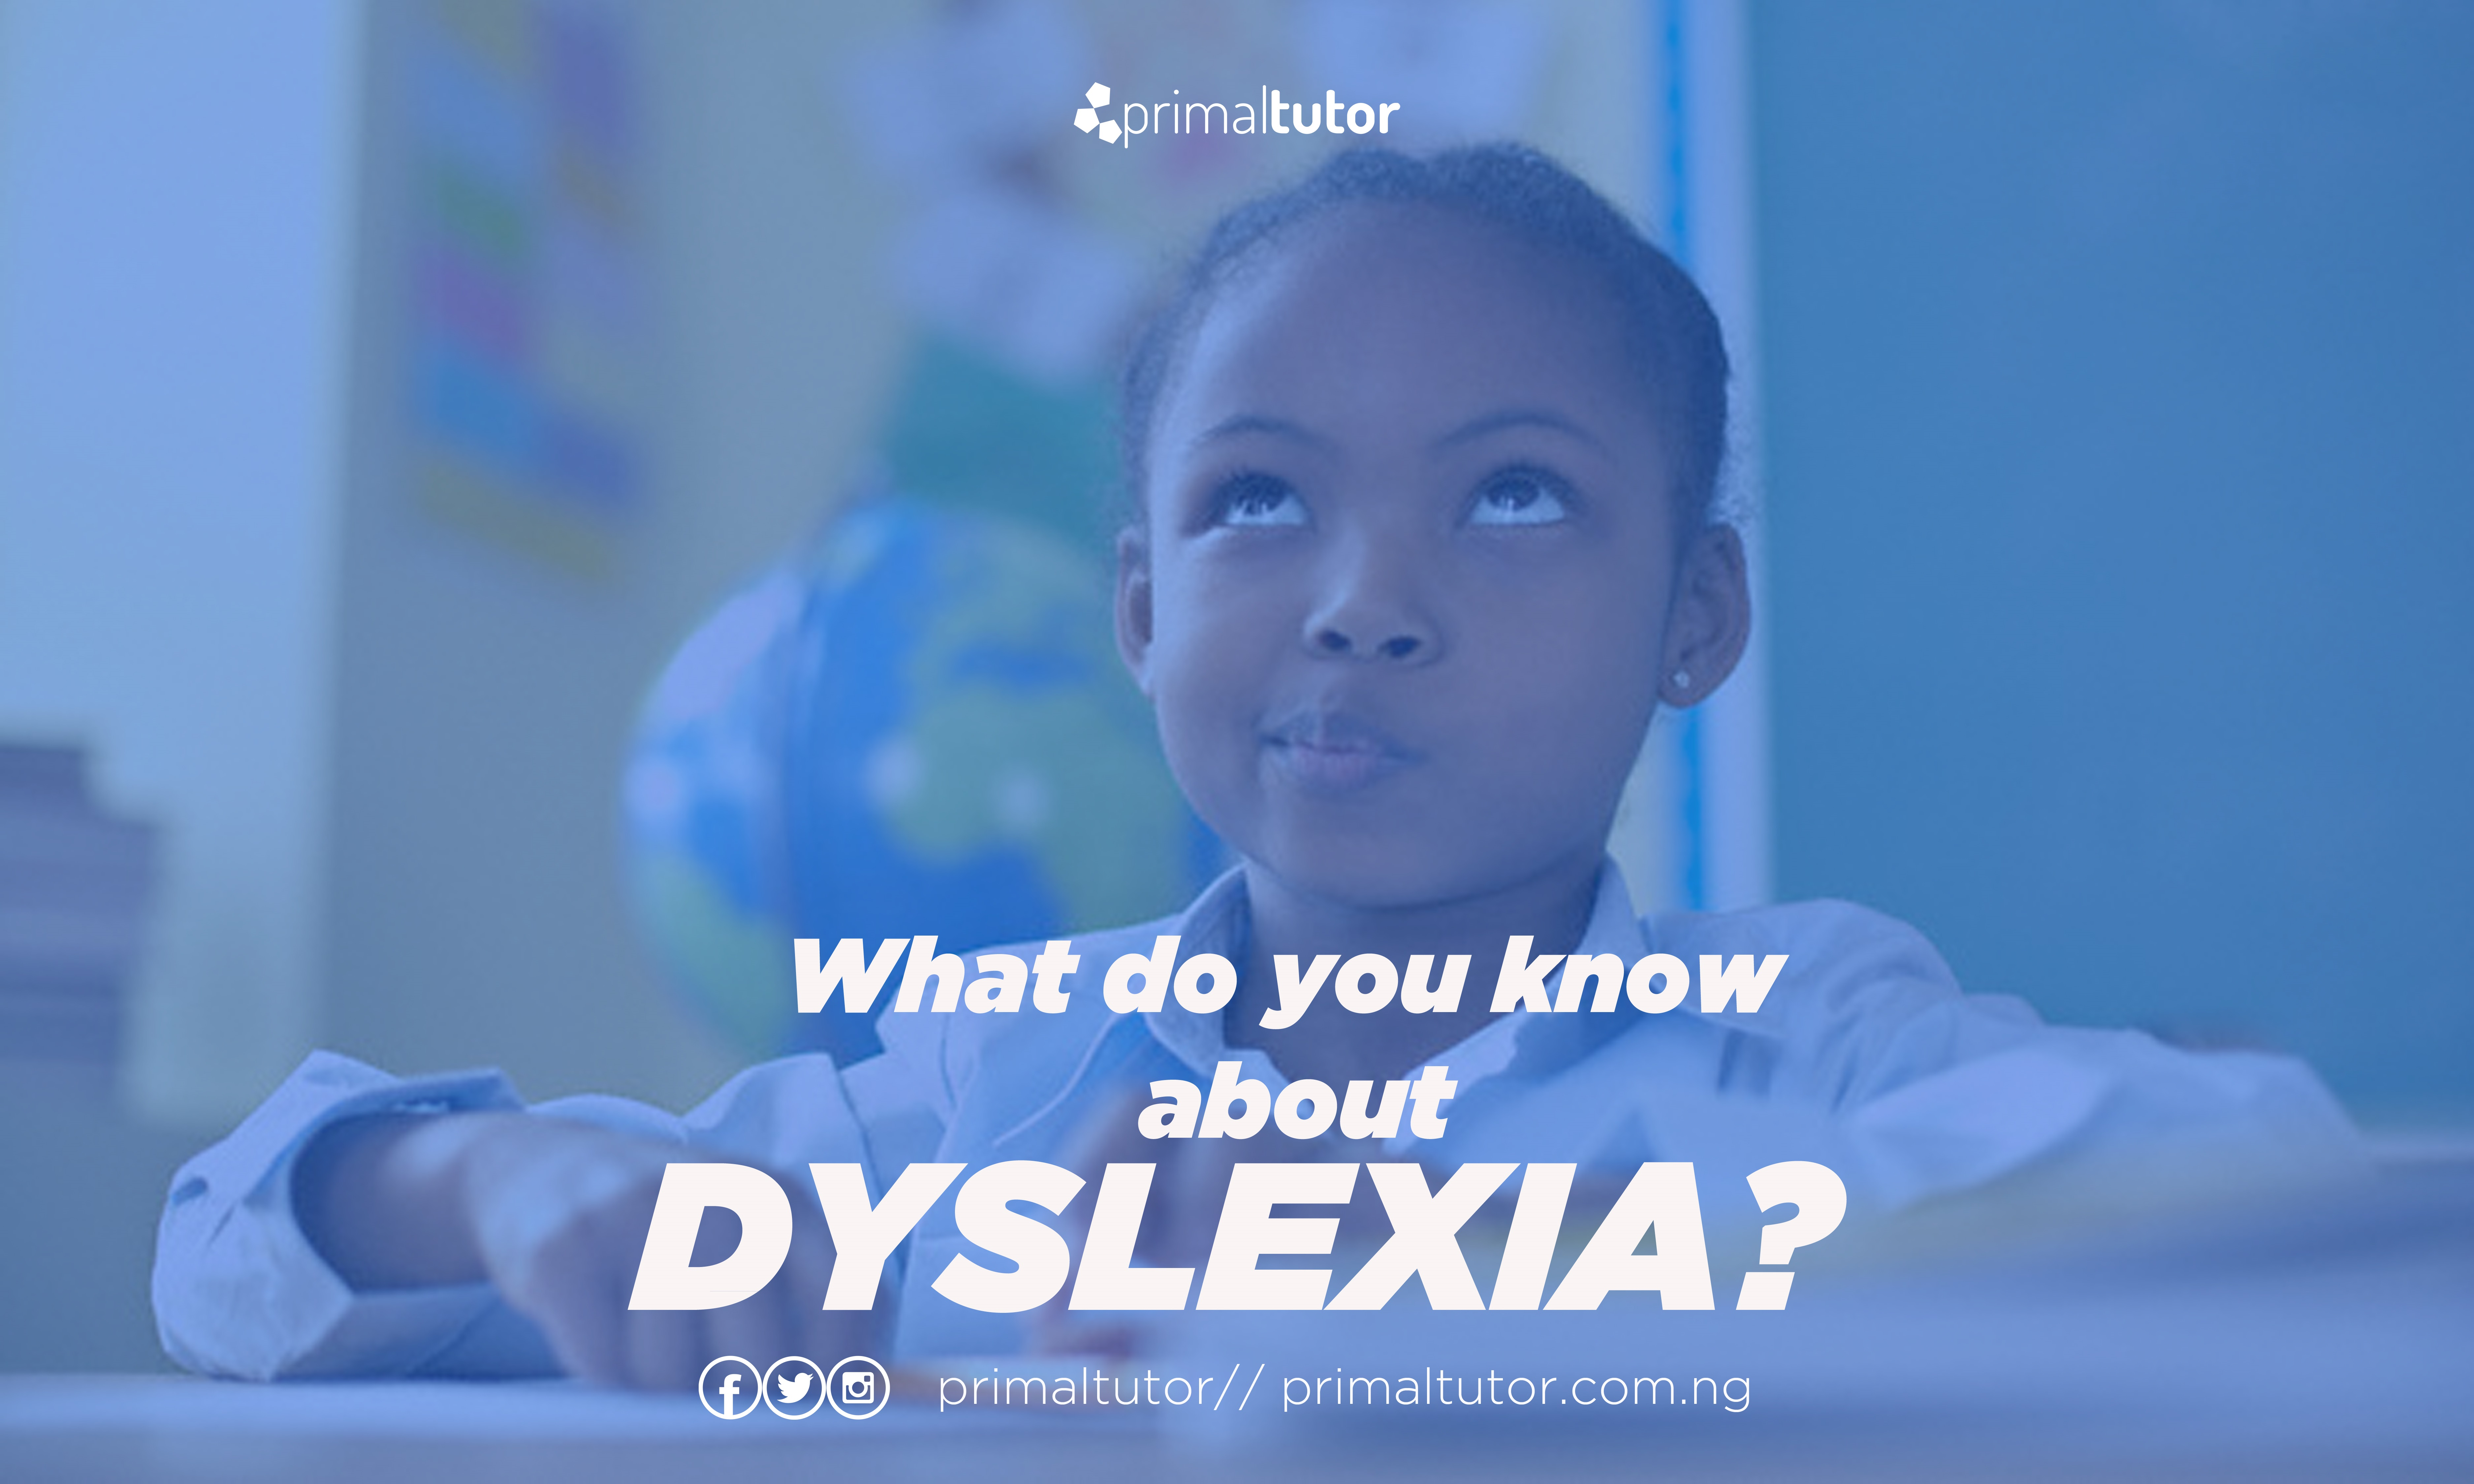 Dyslexia is a language-based learning difference.